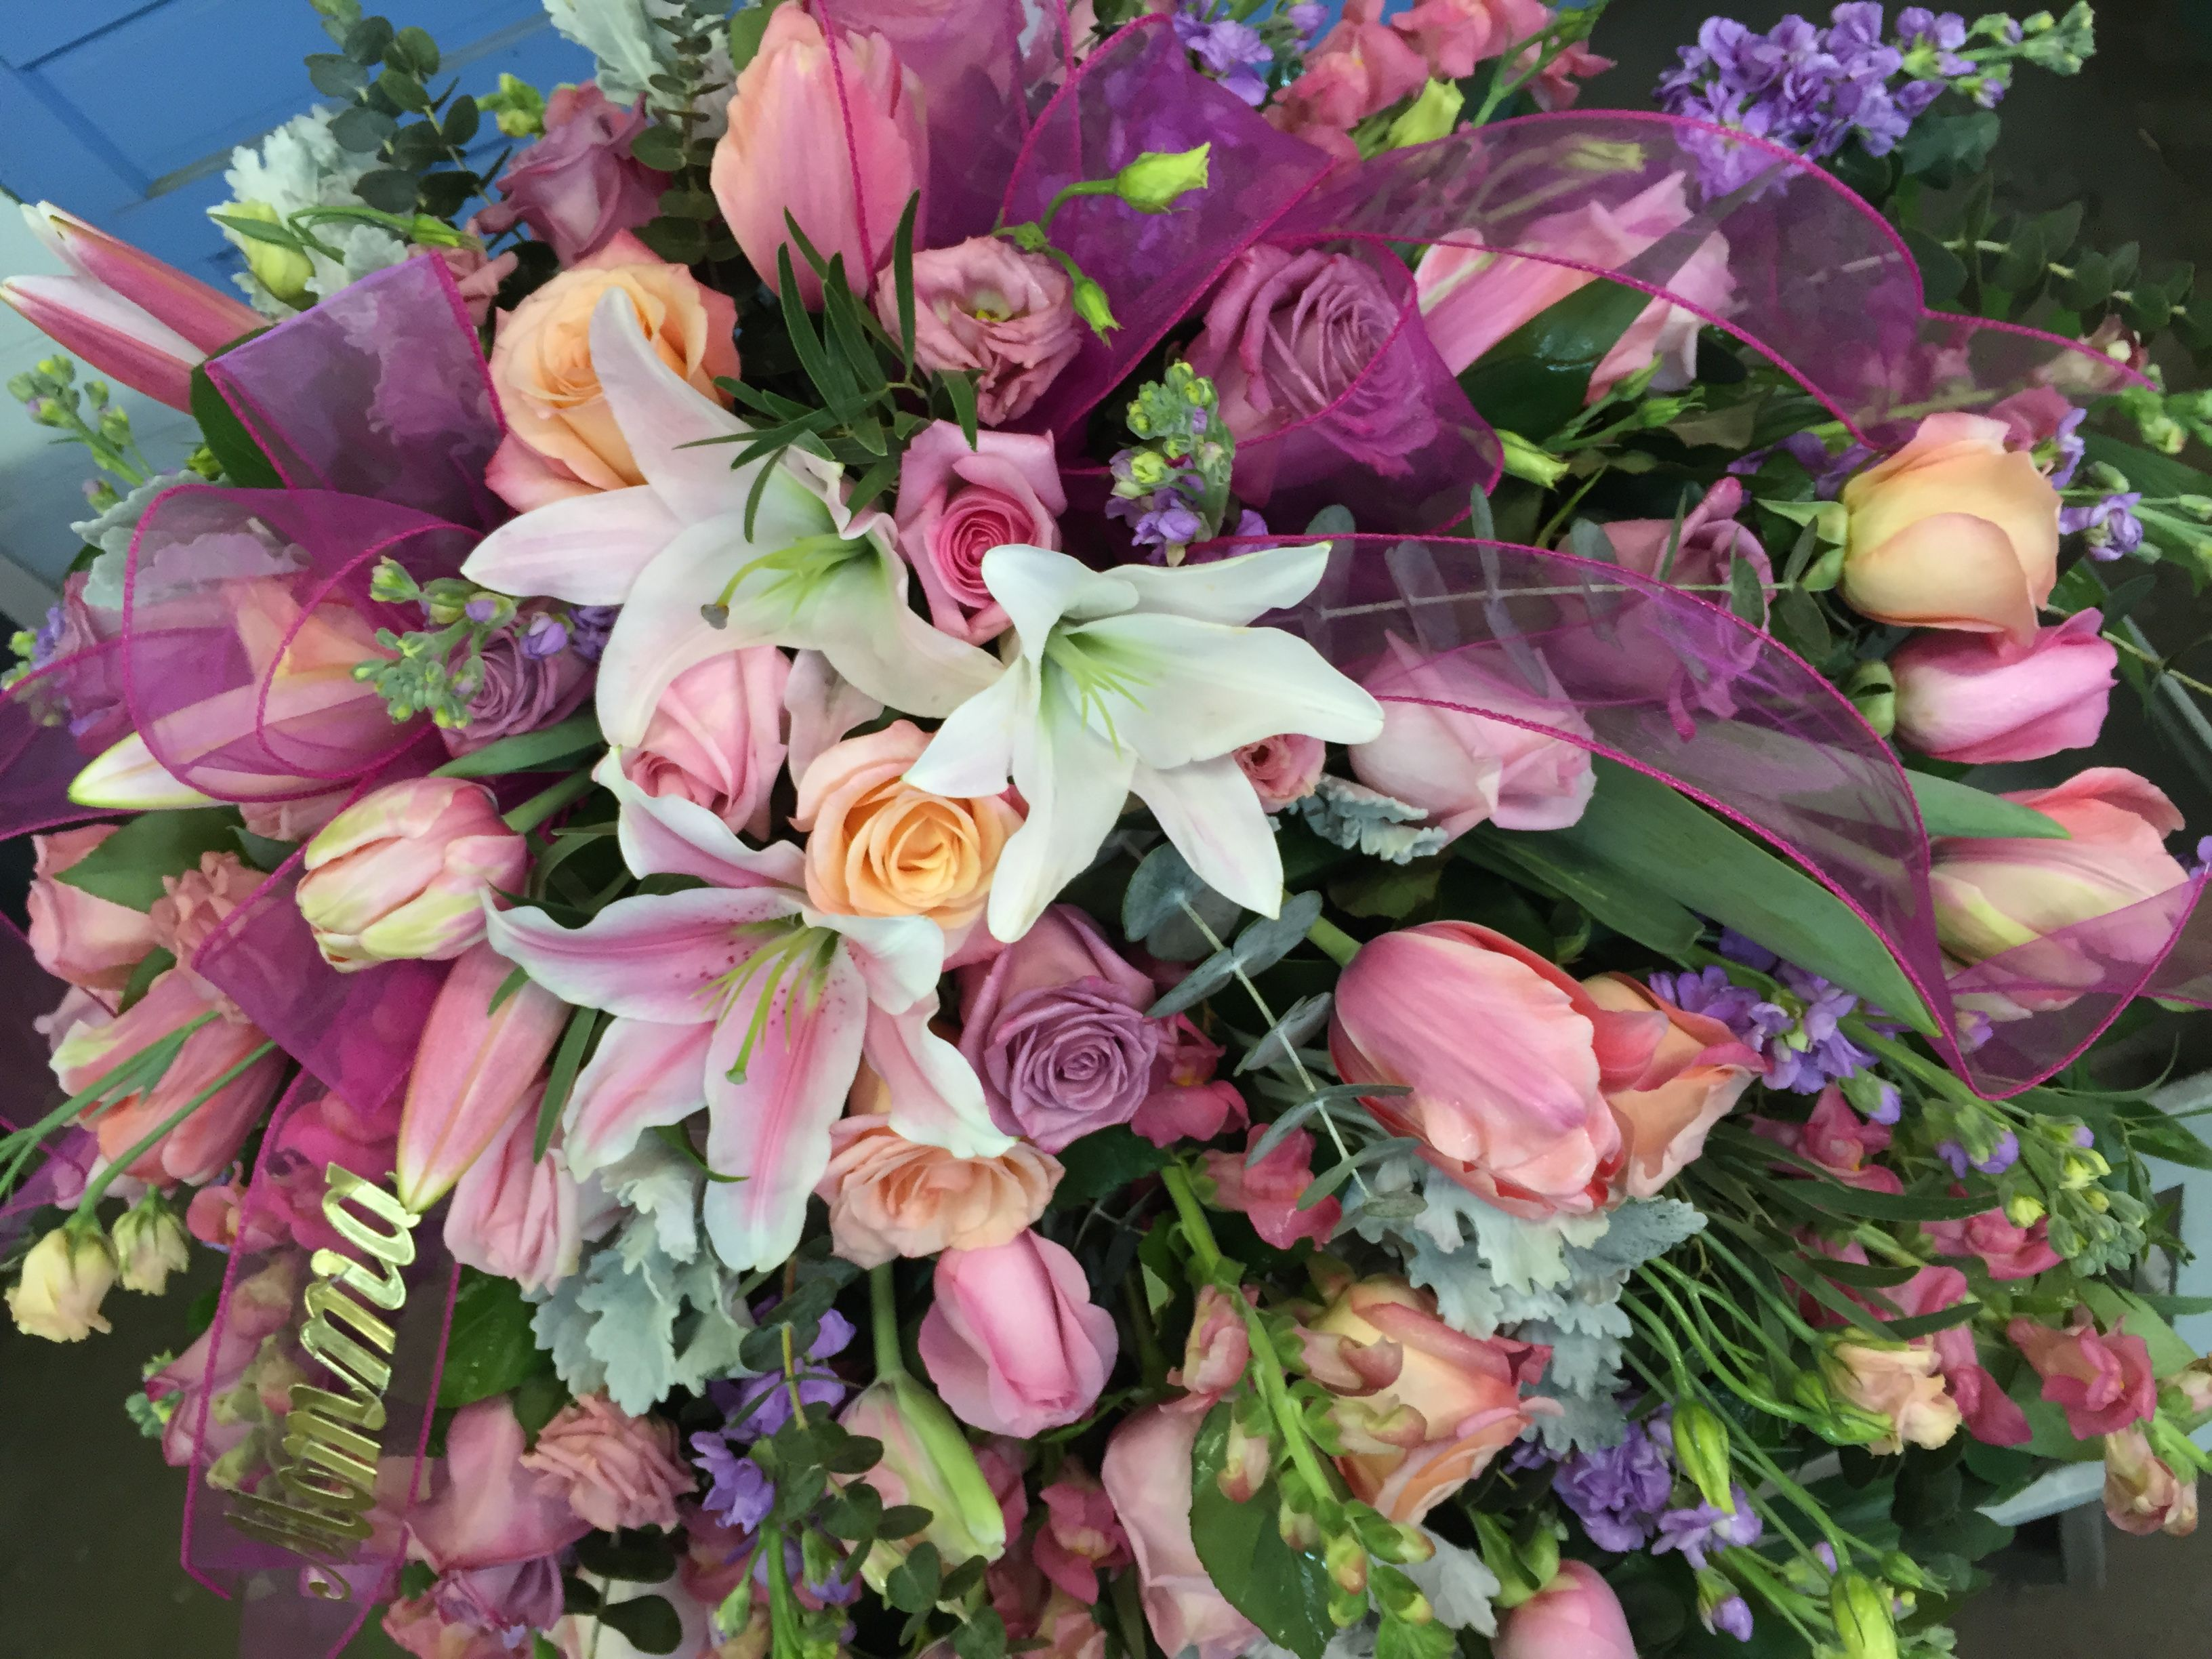 Flowers by jackson florist covington ky sympathy funeral easel order flowers online with same day delivery from jackson florist inc fresh flowers and hand delivered right to your door in covington and surrounding izmirmasajfo